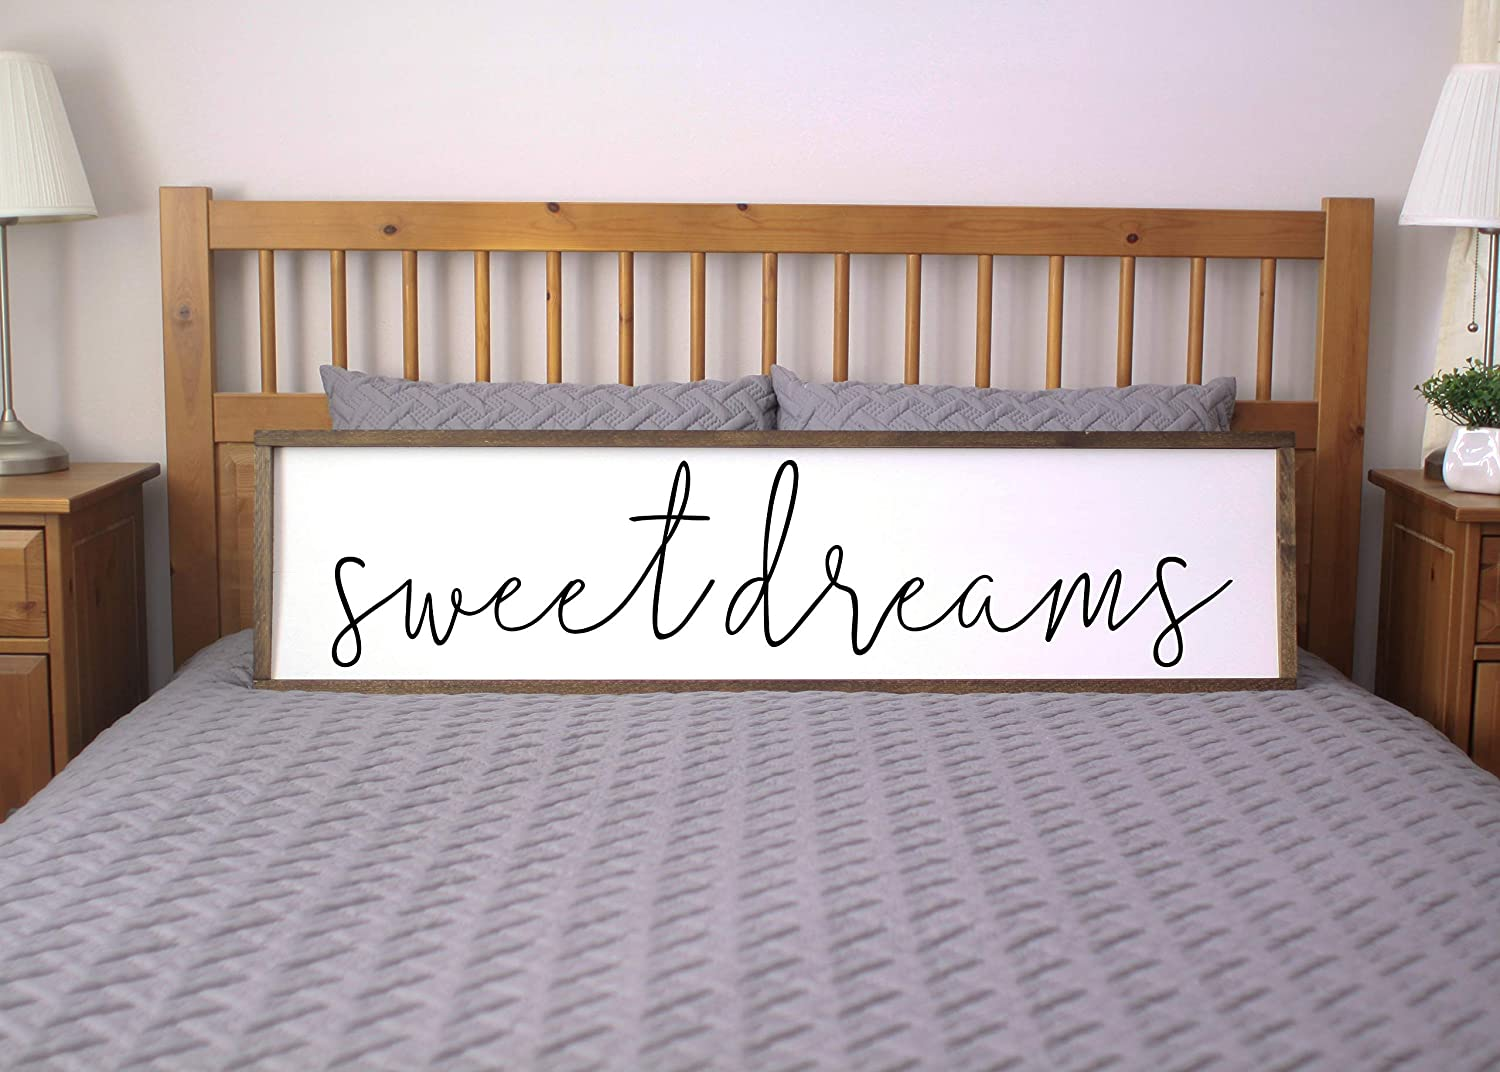 bawansign Sweet Dreams Sign for Bedroom Farmhouse Framed Sign Farmhouse Bedroom Rustic Chic Wall Decor Sign for Above Bed